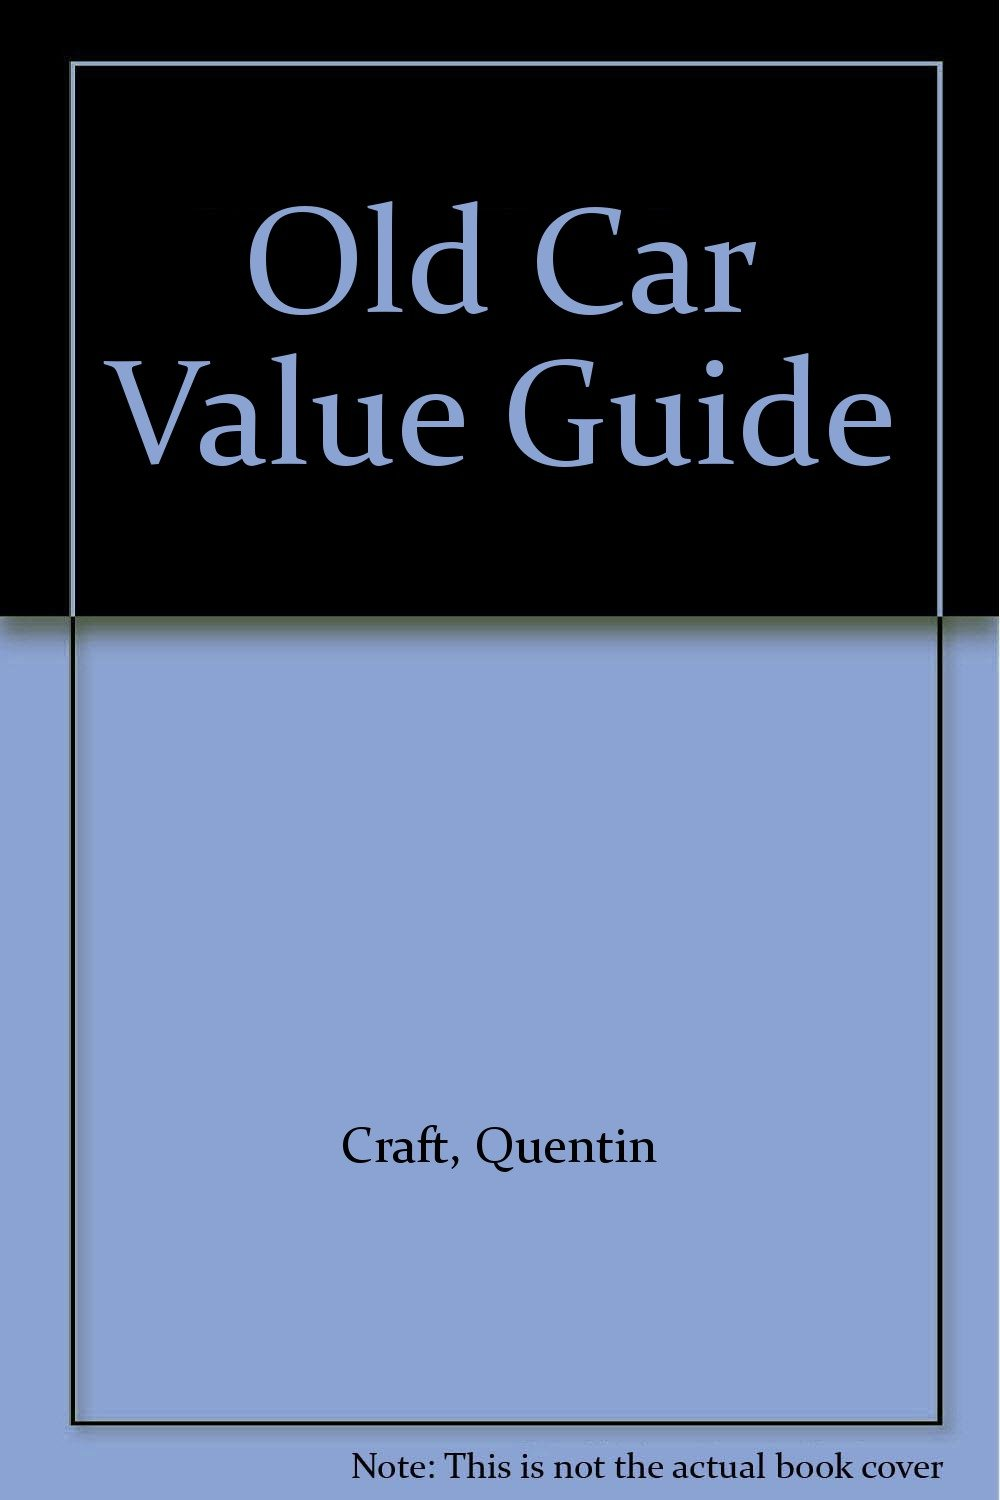 Old Car Value Guide: Quentin Craft: Amazon.com: Books